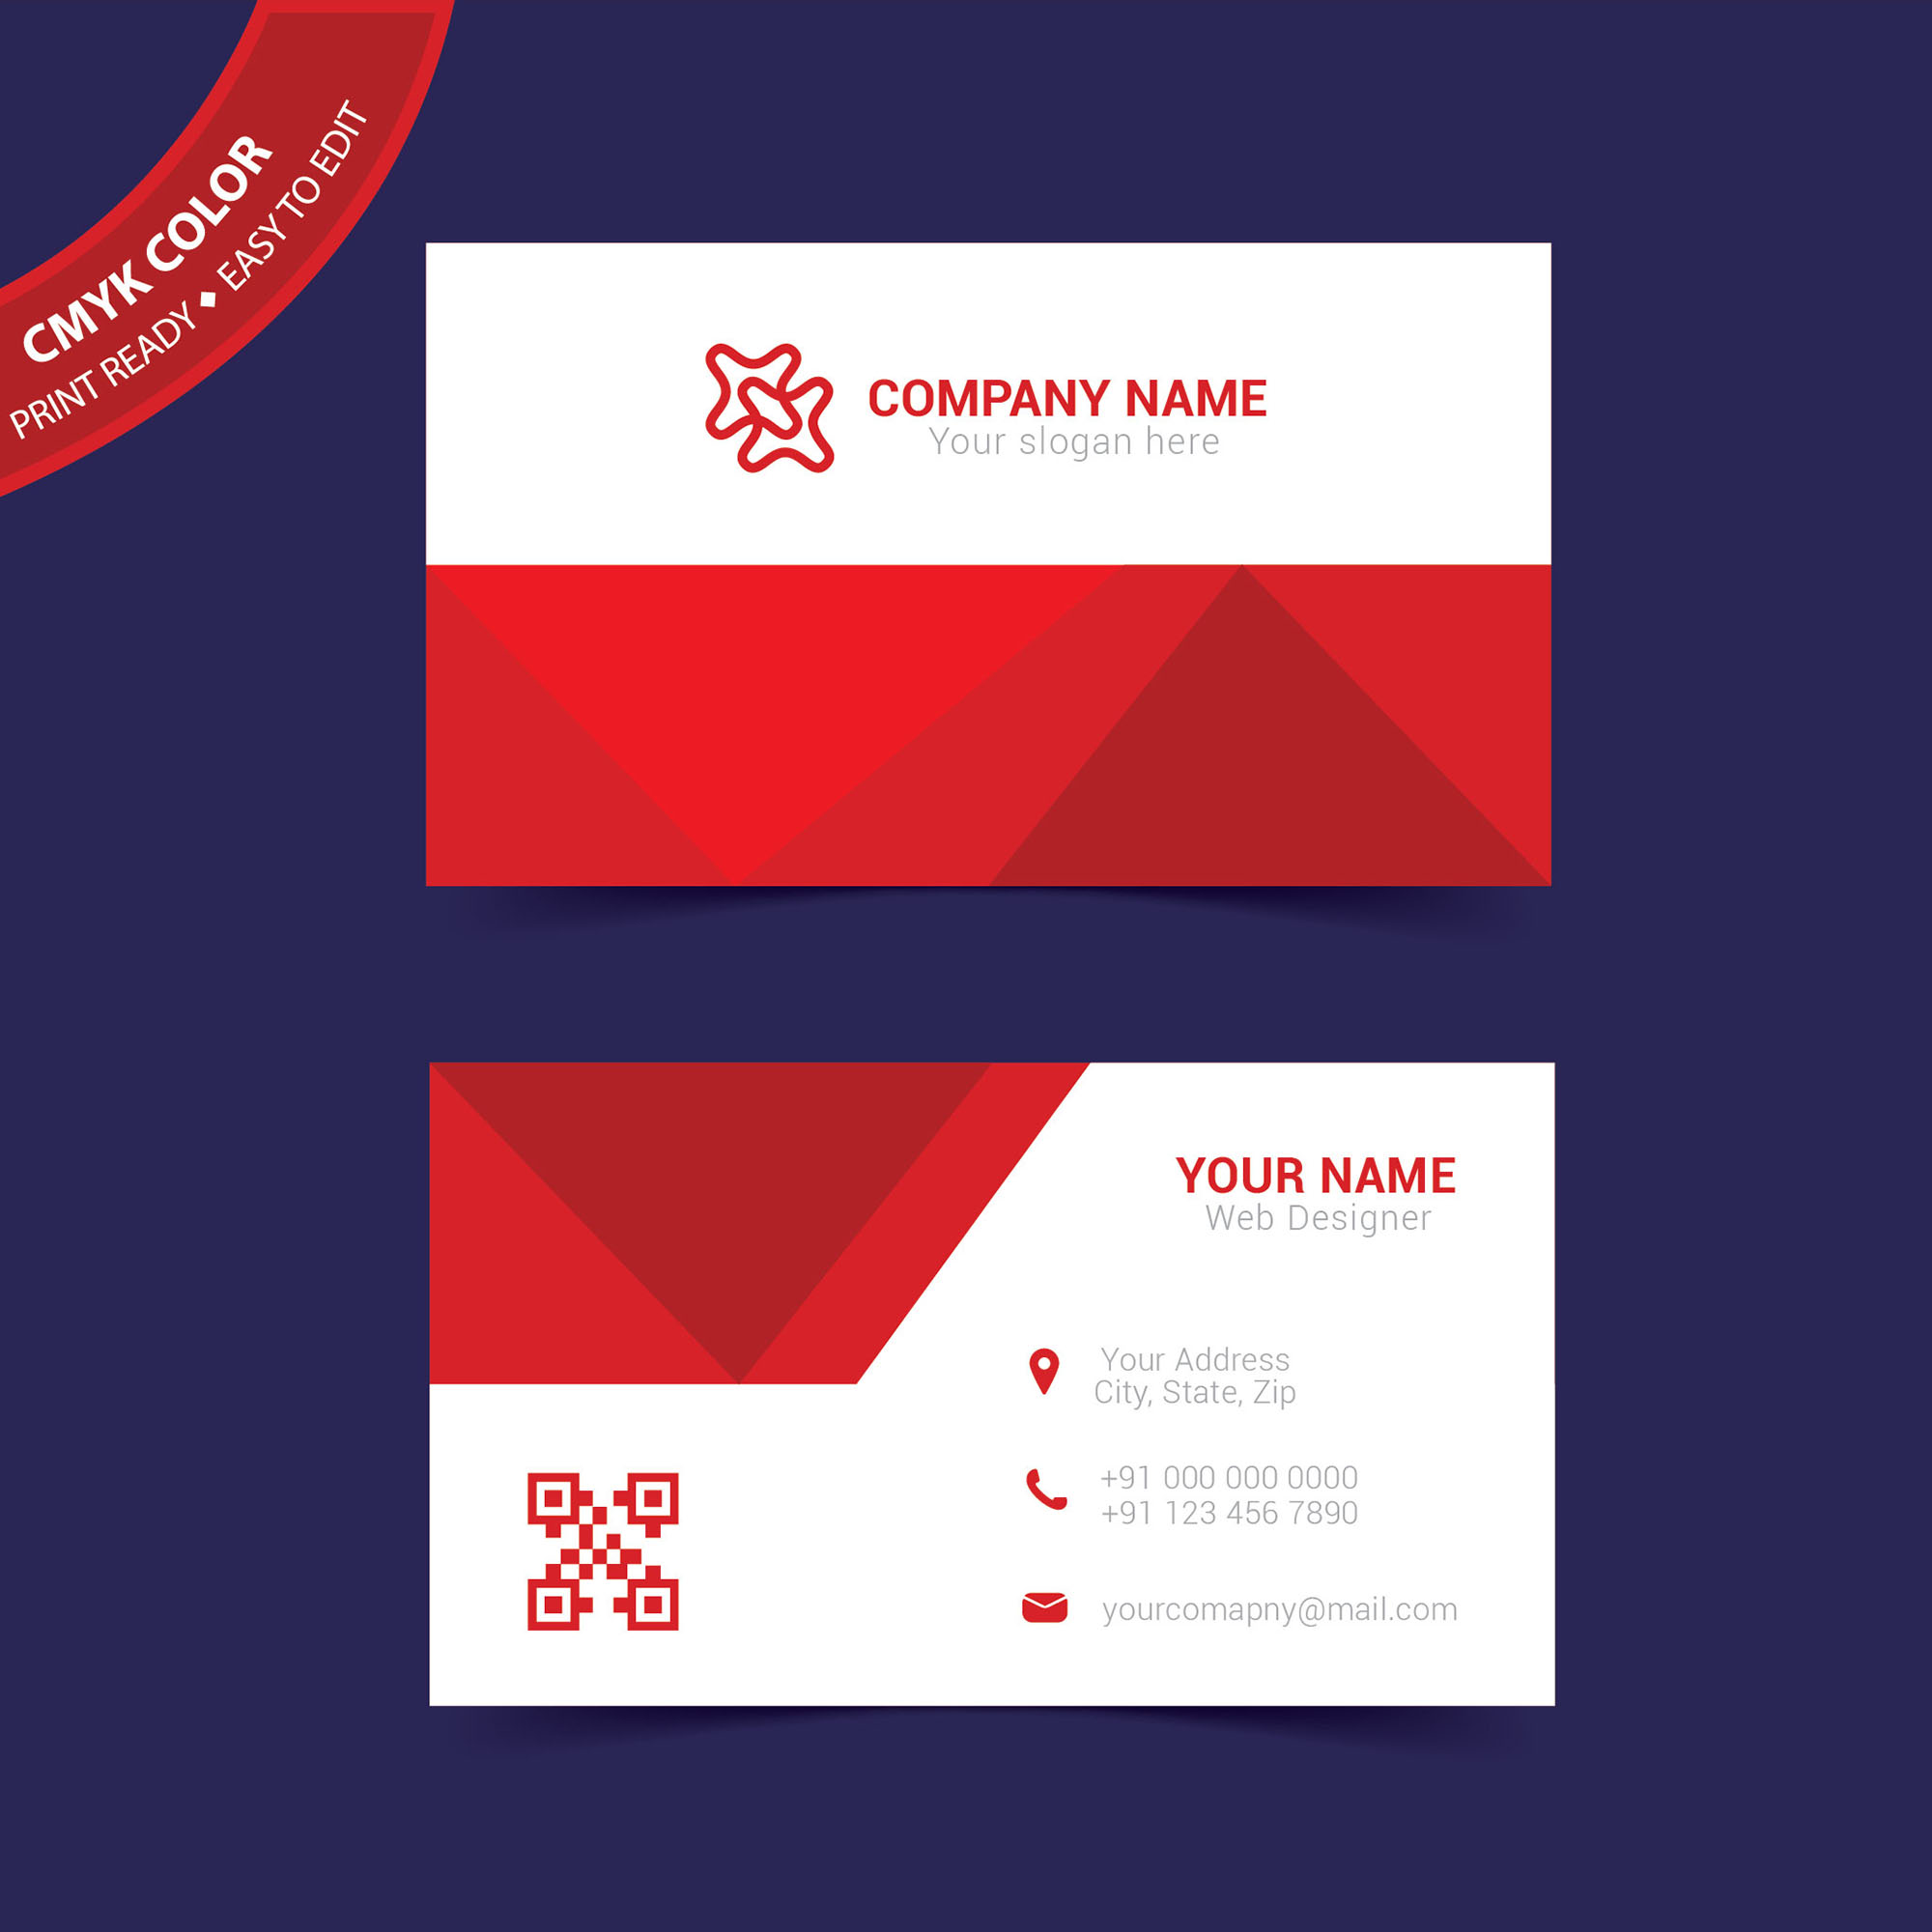 Business card print template free download wisxi business card business cards business card design business card template design templates flashek Image collections